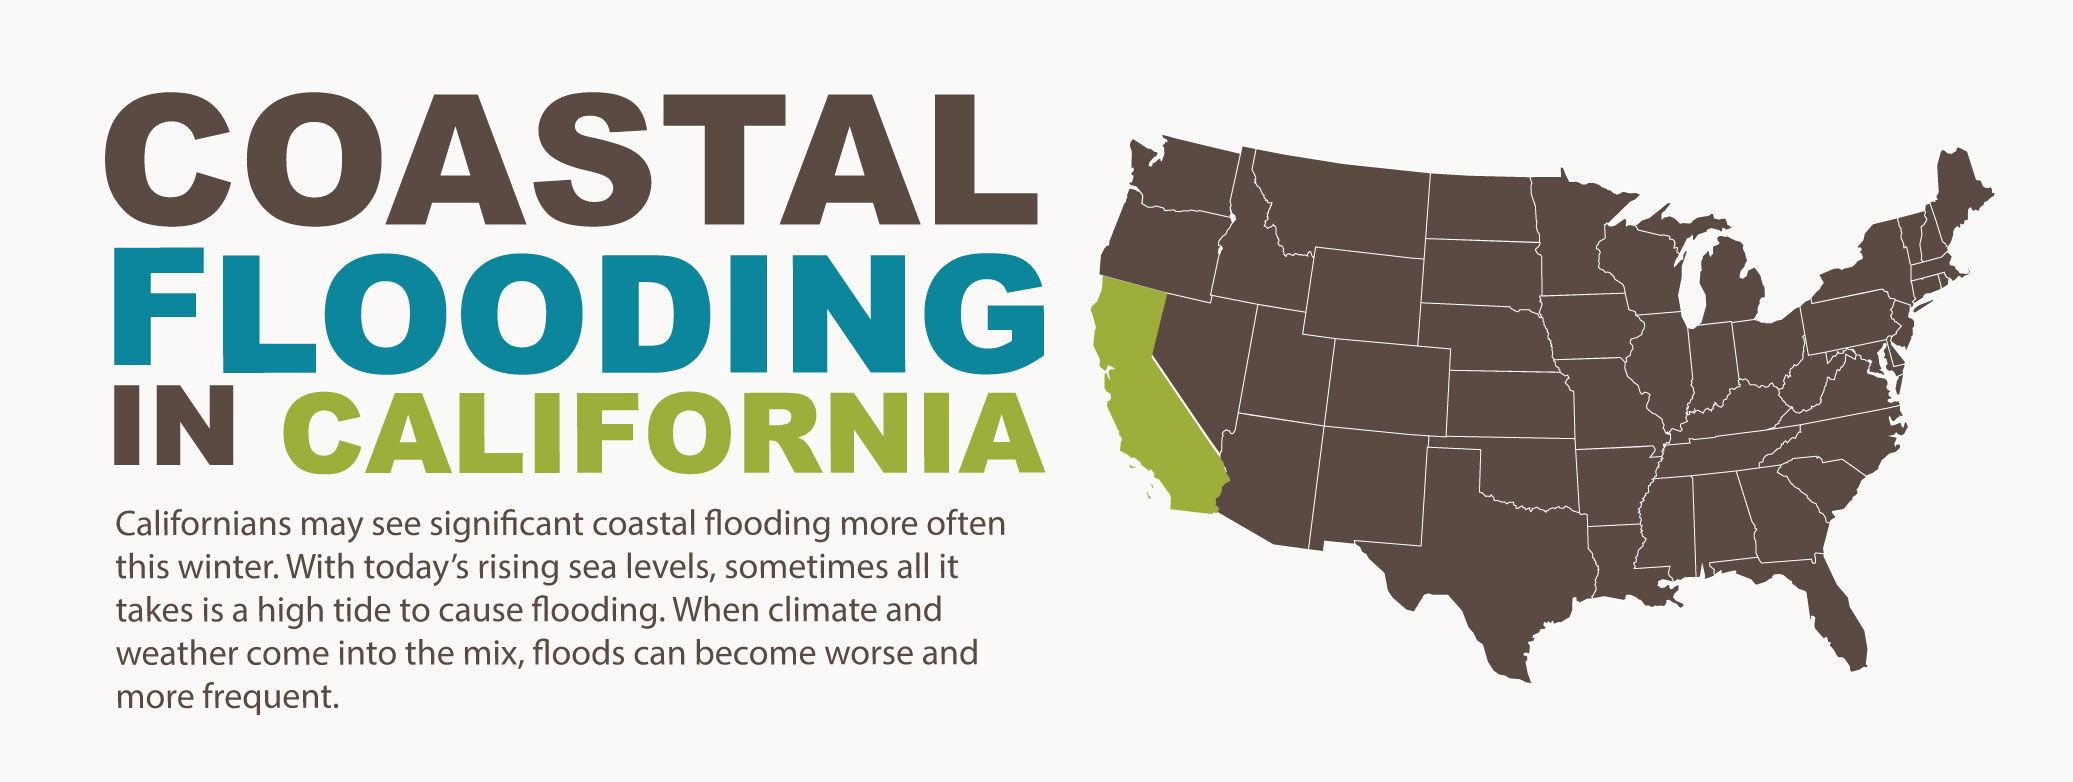 Graphic showing a map of the U.S. with California highlighted. Text: Nuisance Flooding in California. Californians may see significant coastal 'nuisance flooding' more often this wenter. With today's rising sea levels, sometimes all it takes is a high tide to cause this minor flooding. When climate and weather come into the mix, nuisance floods can become worse and more frequent.